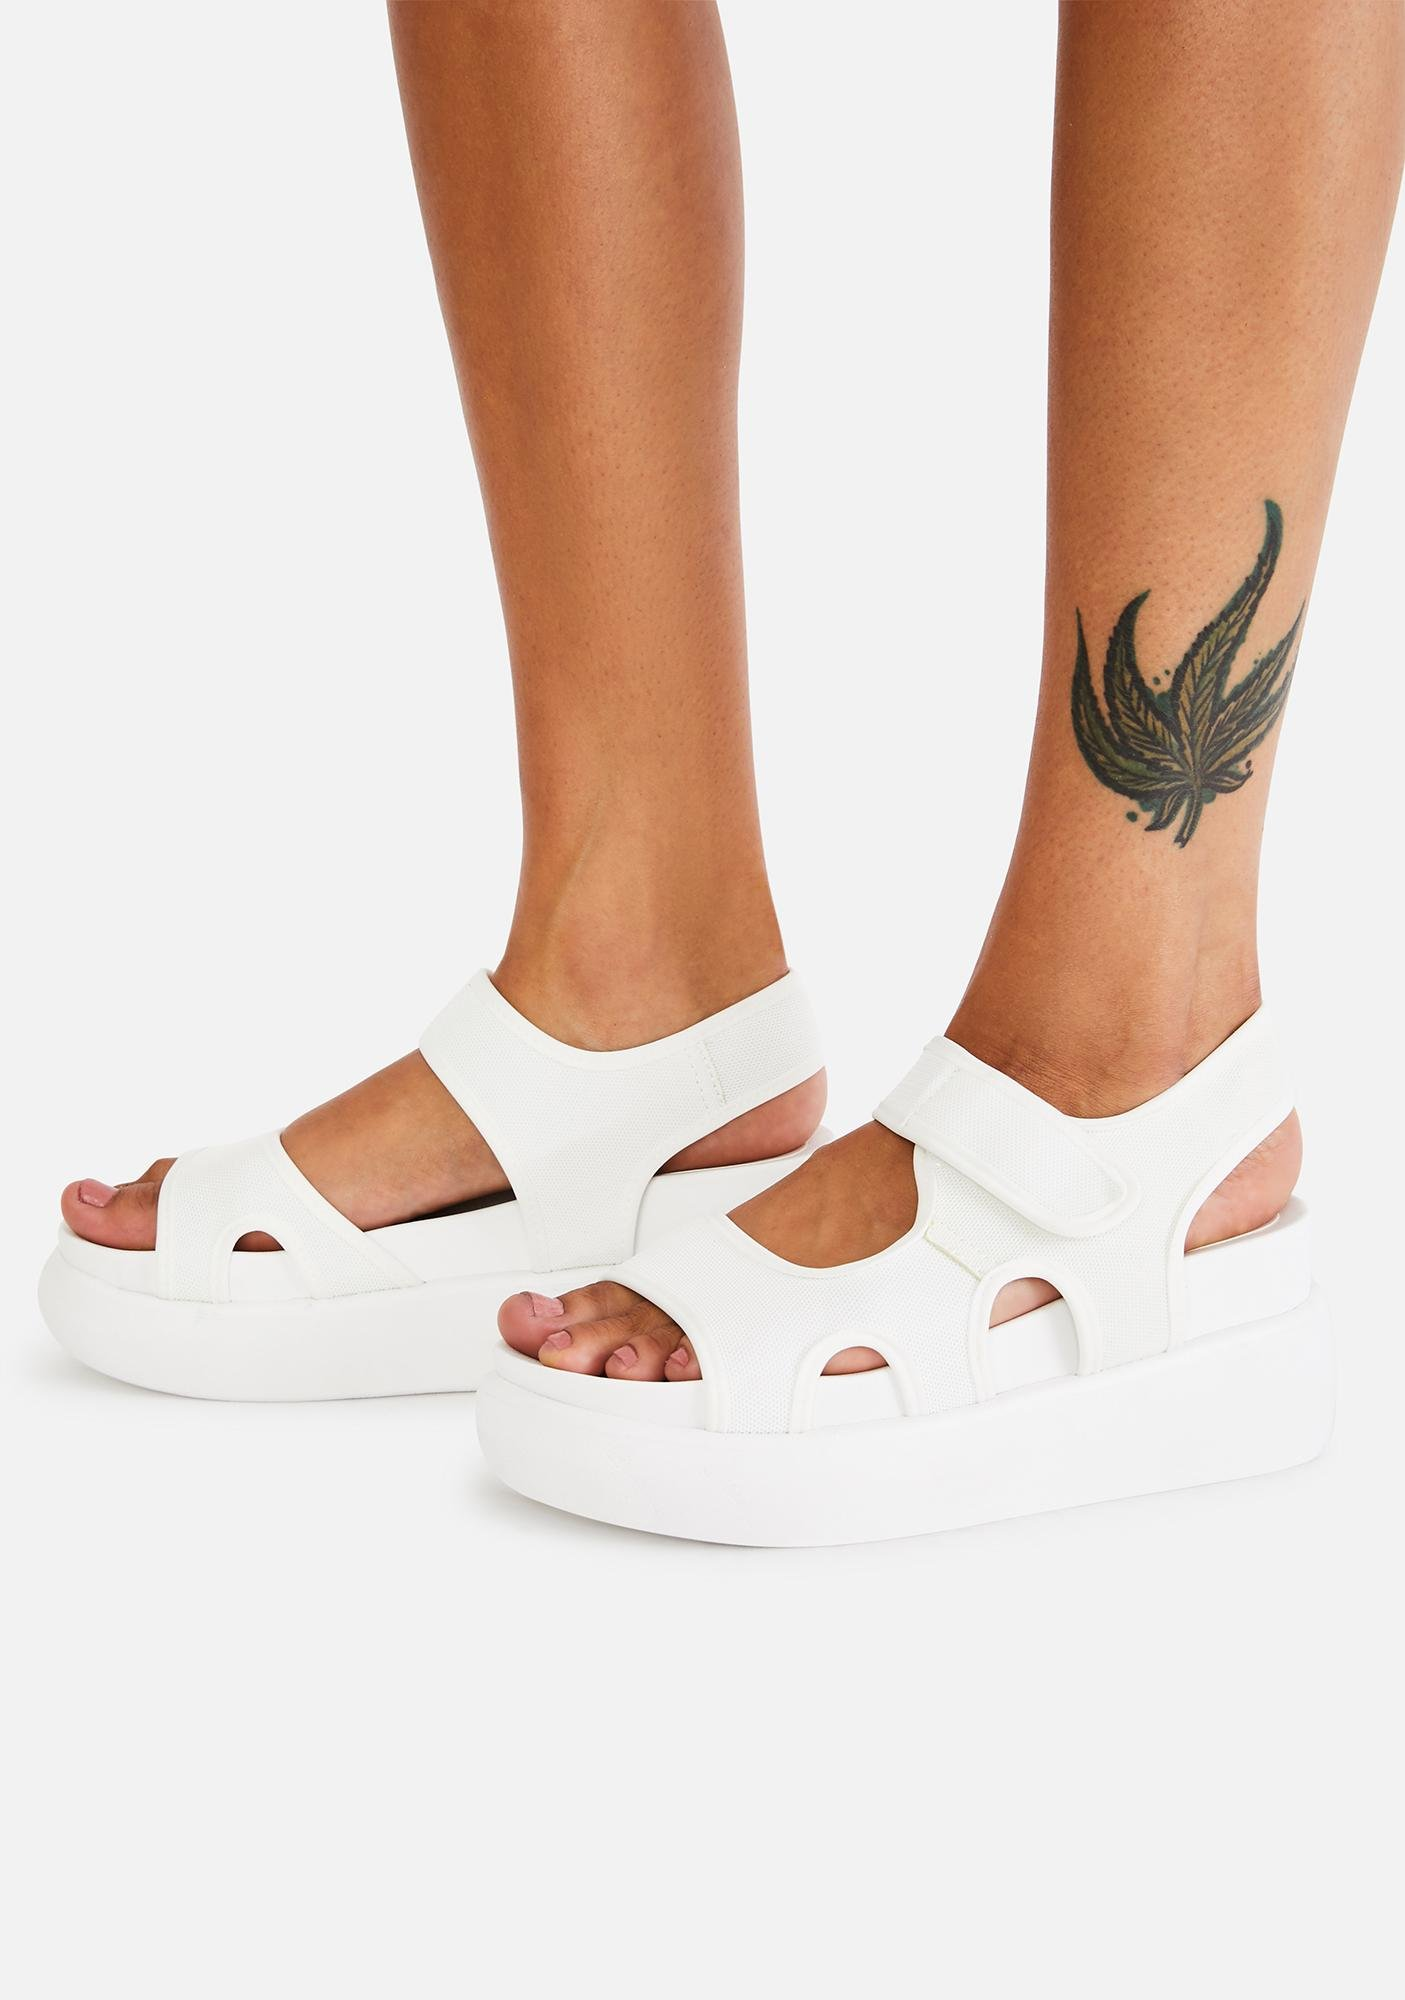 Boo Here To Win Platform Sandals